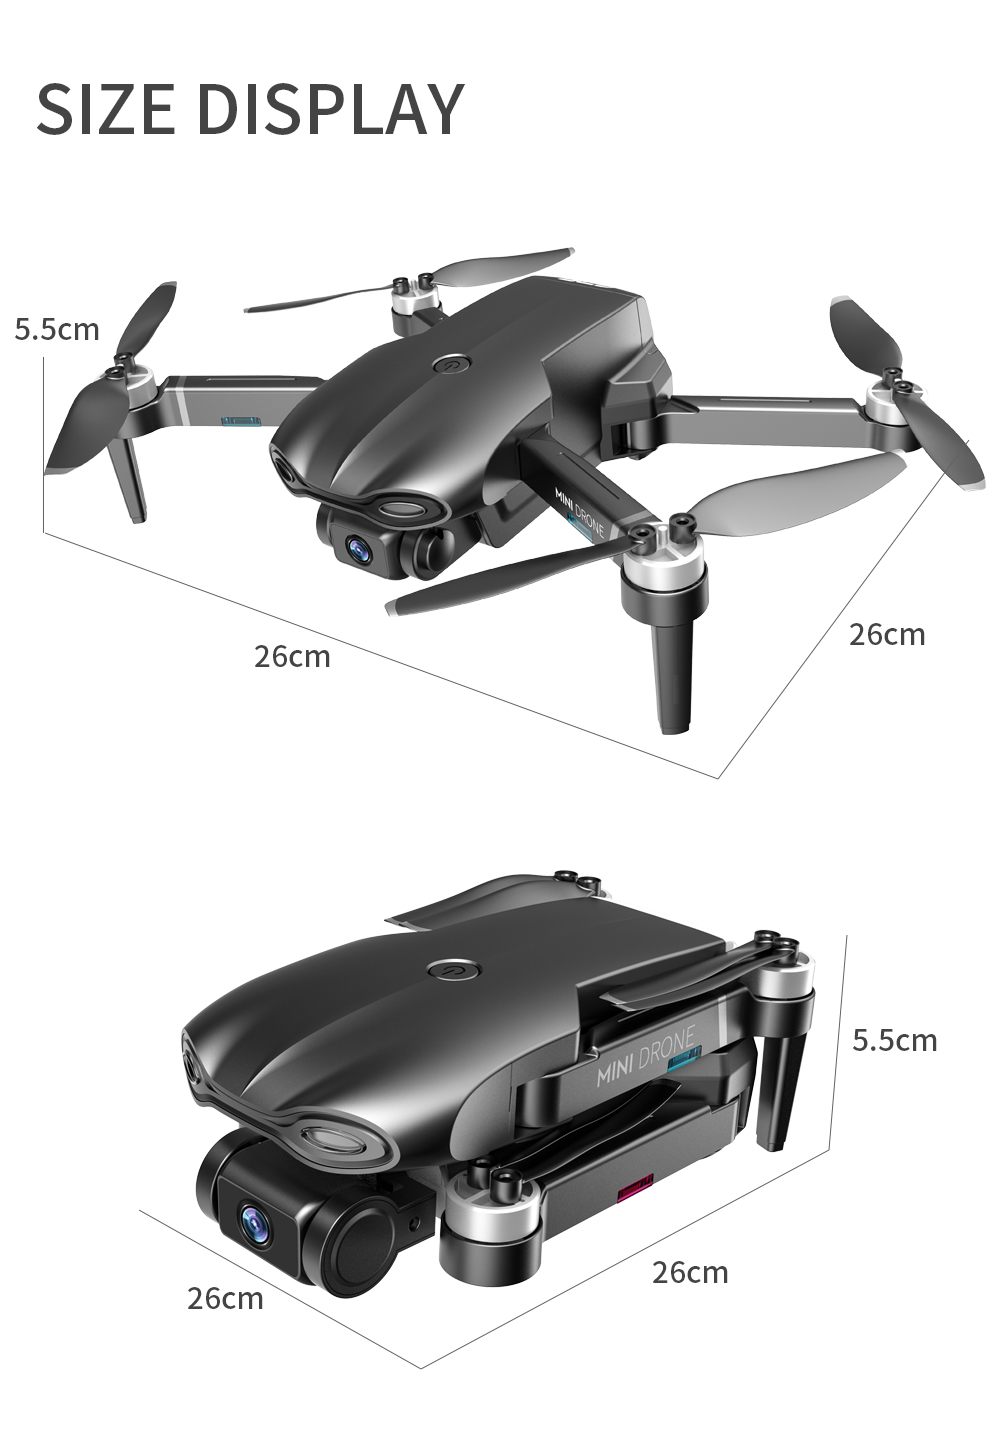 Mini Drone Quadcopter Folding GPS 5G 6K HD WiFi 1200 Meters Long Picture Transmission Drone Aerial Shot - Gray One Battery